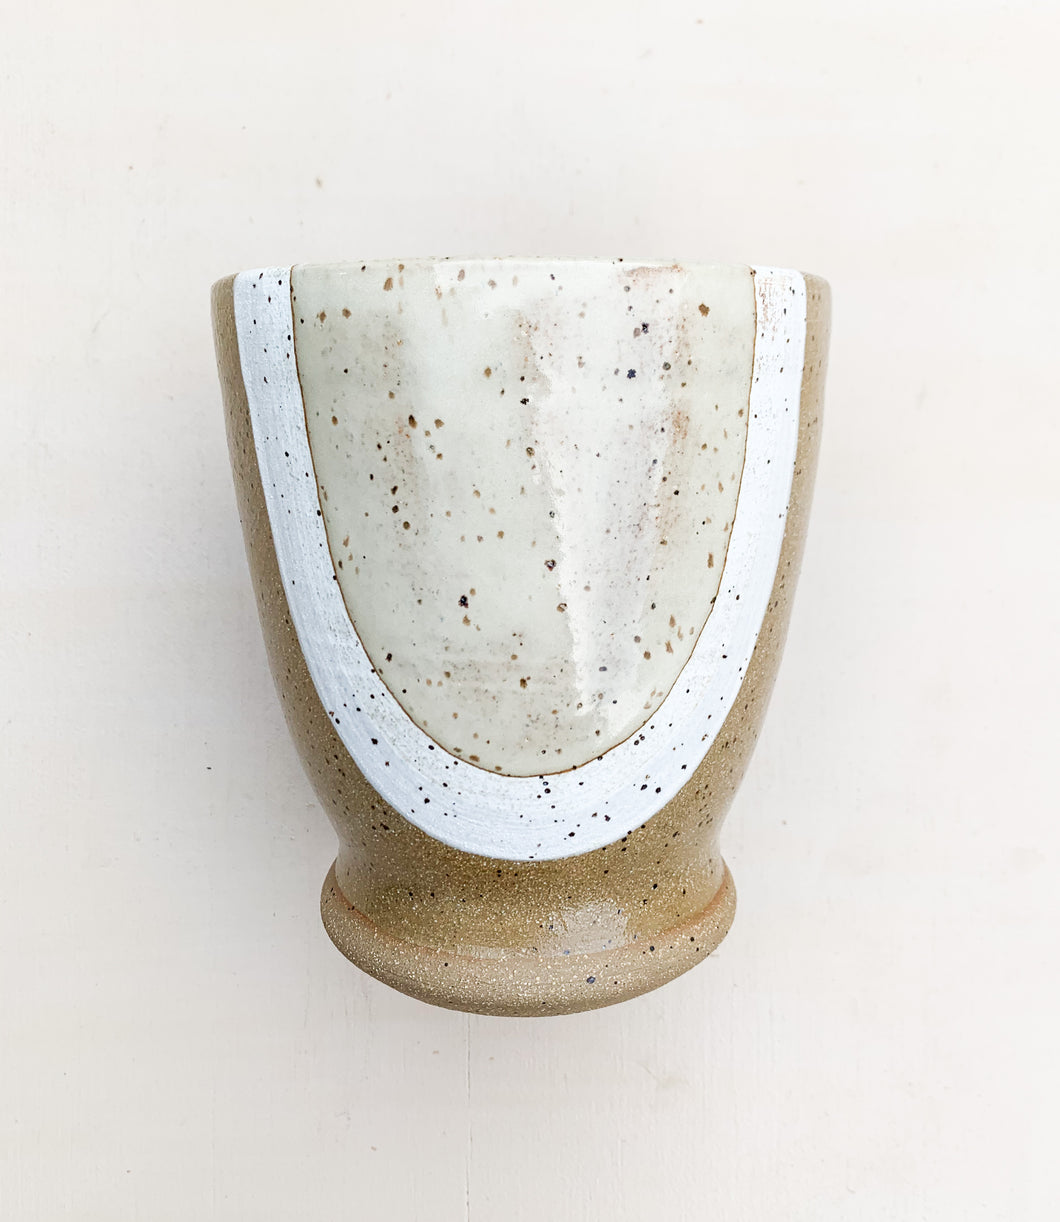 Hand thrown Ceramic Planter Vase